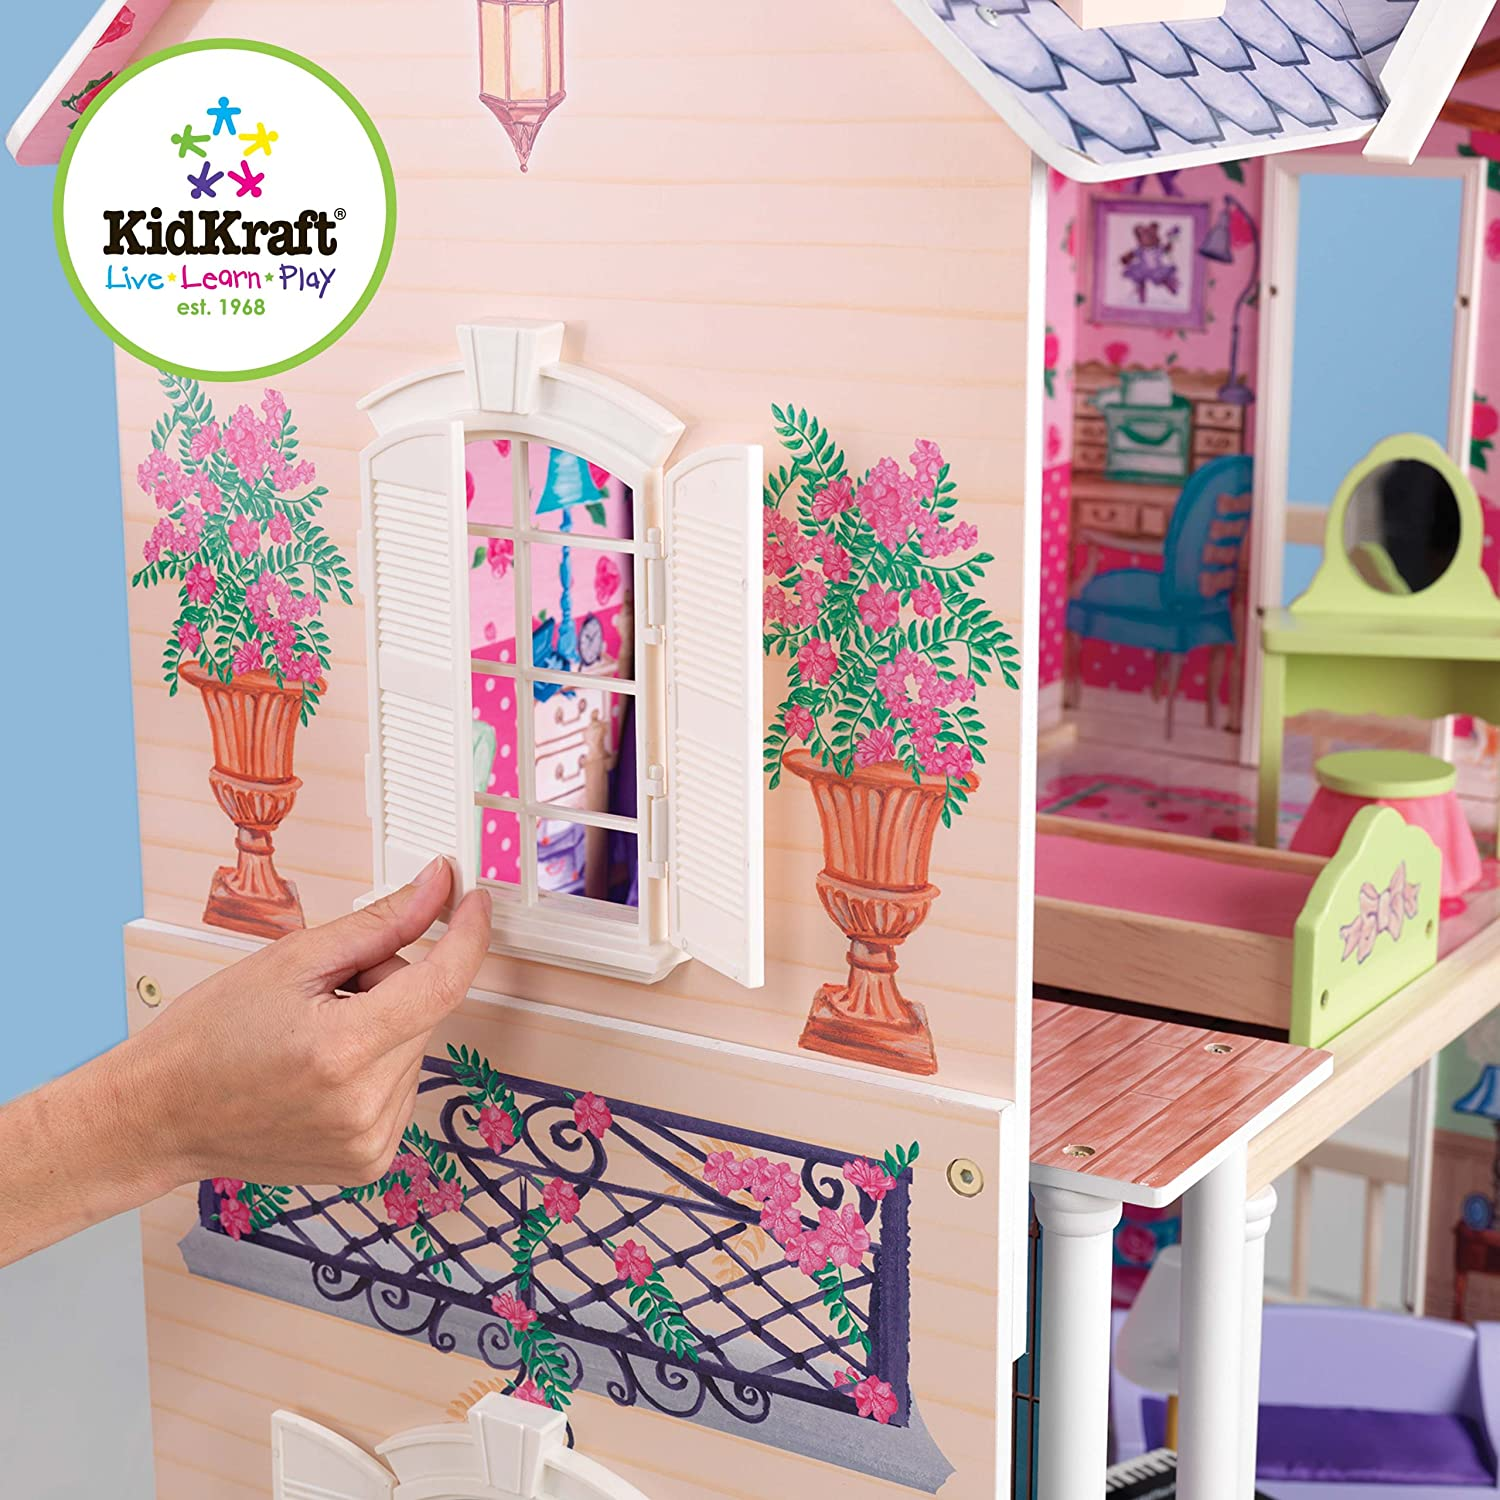 mazon.com: KidKraft My Dreamy Dollhouse with Furniture: oys & Games - ^